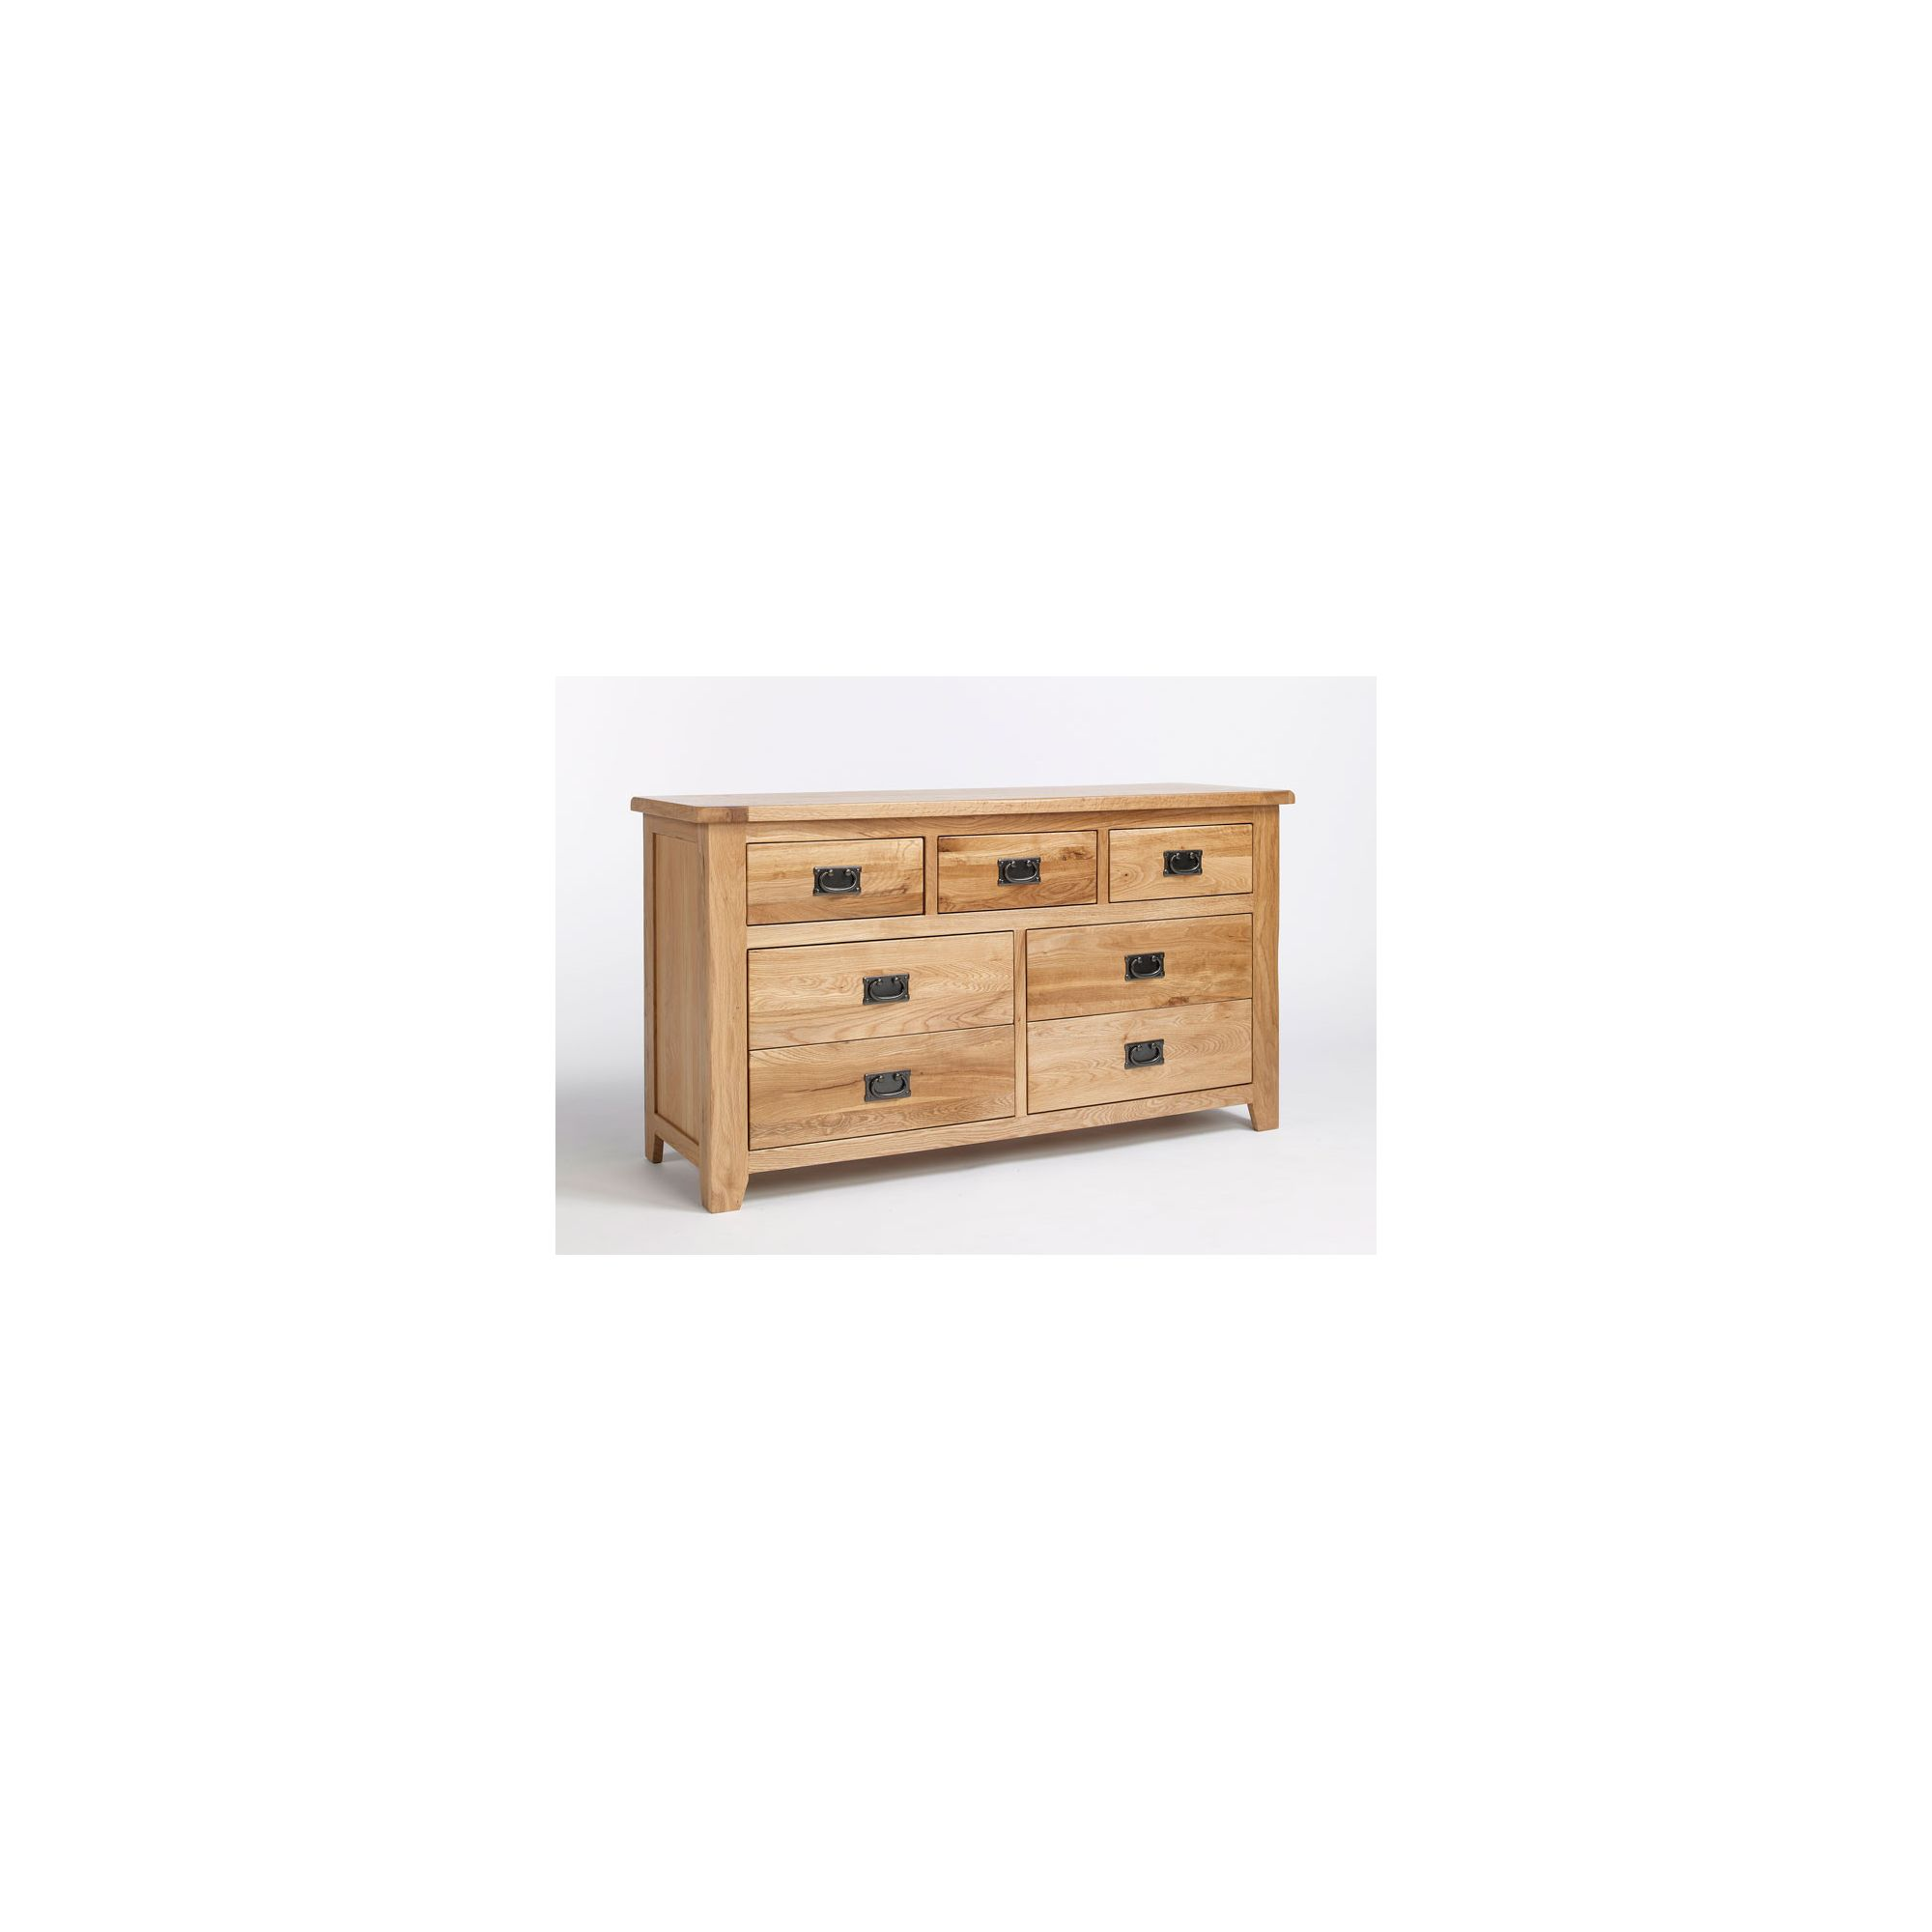 Ametis Westbury Reclaimed Oak 3 Over 4 Drawer Wide Chest at Tescos Direct